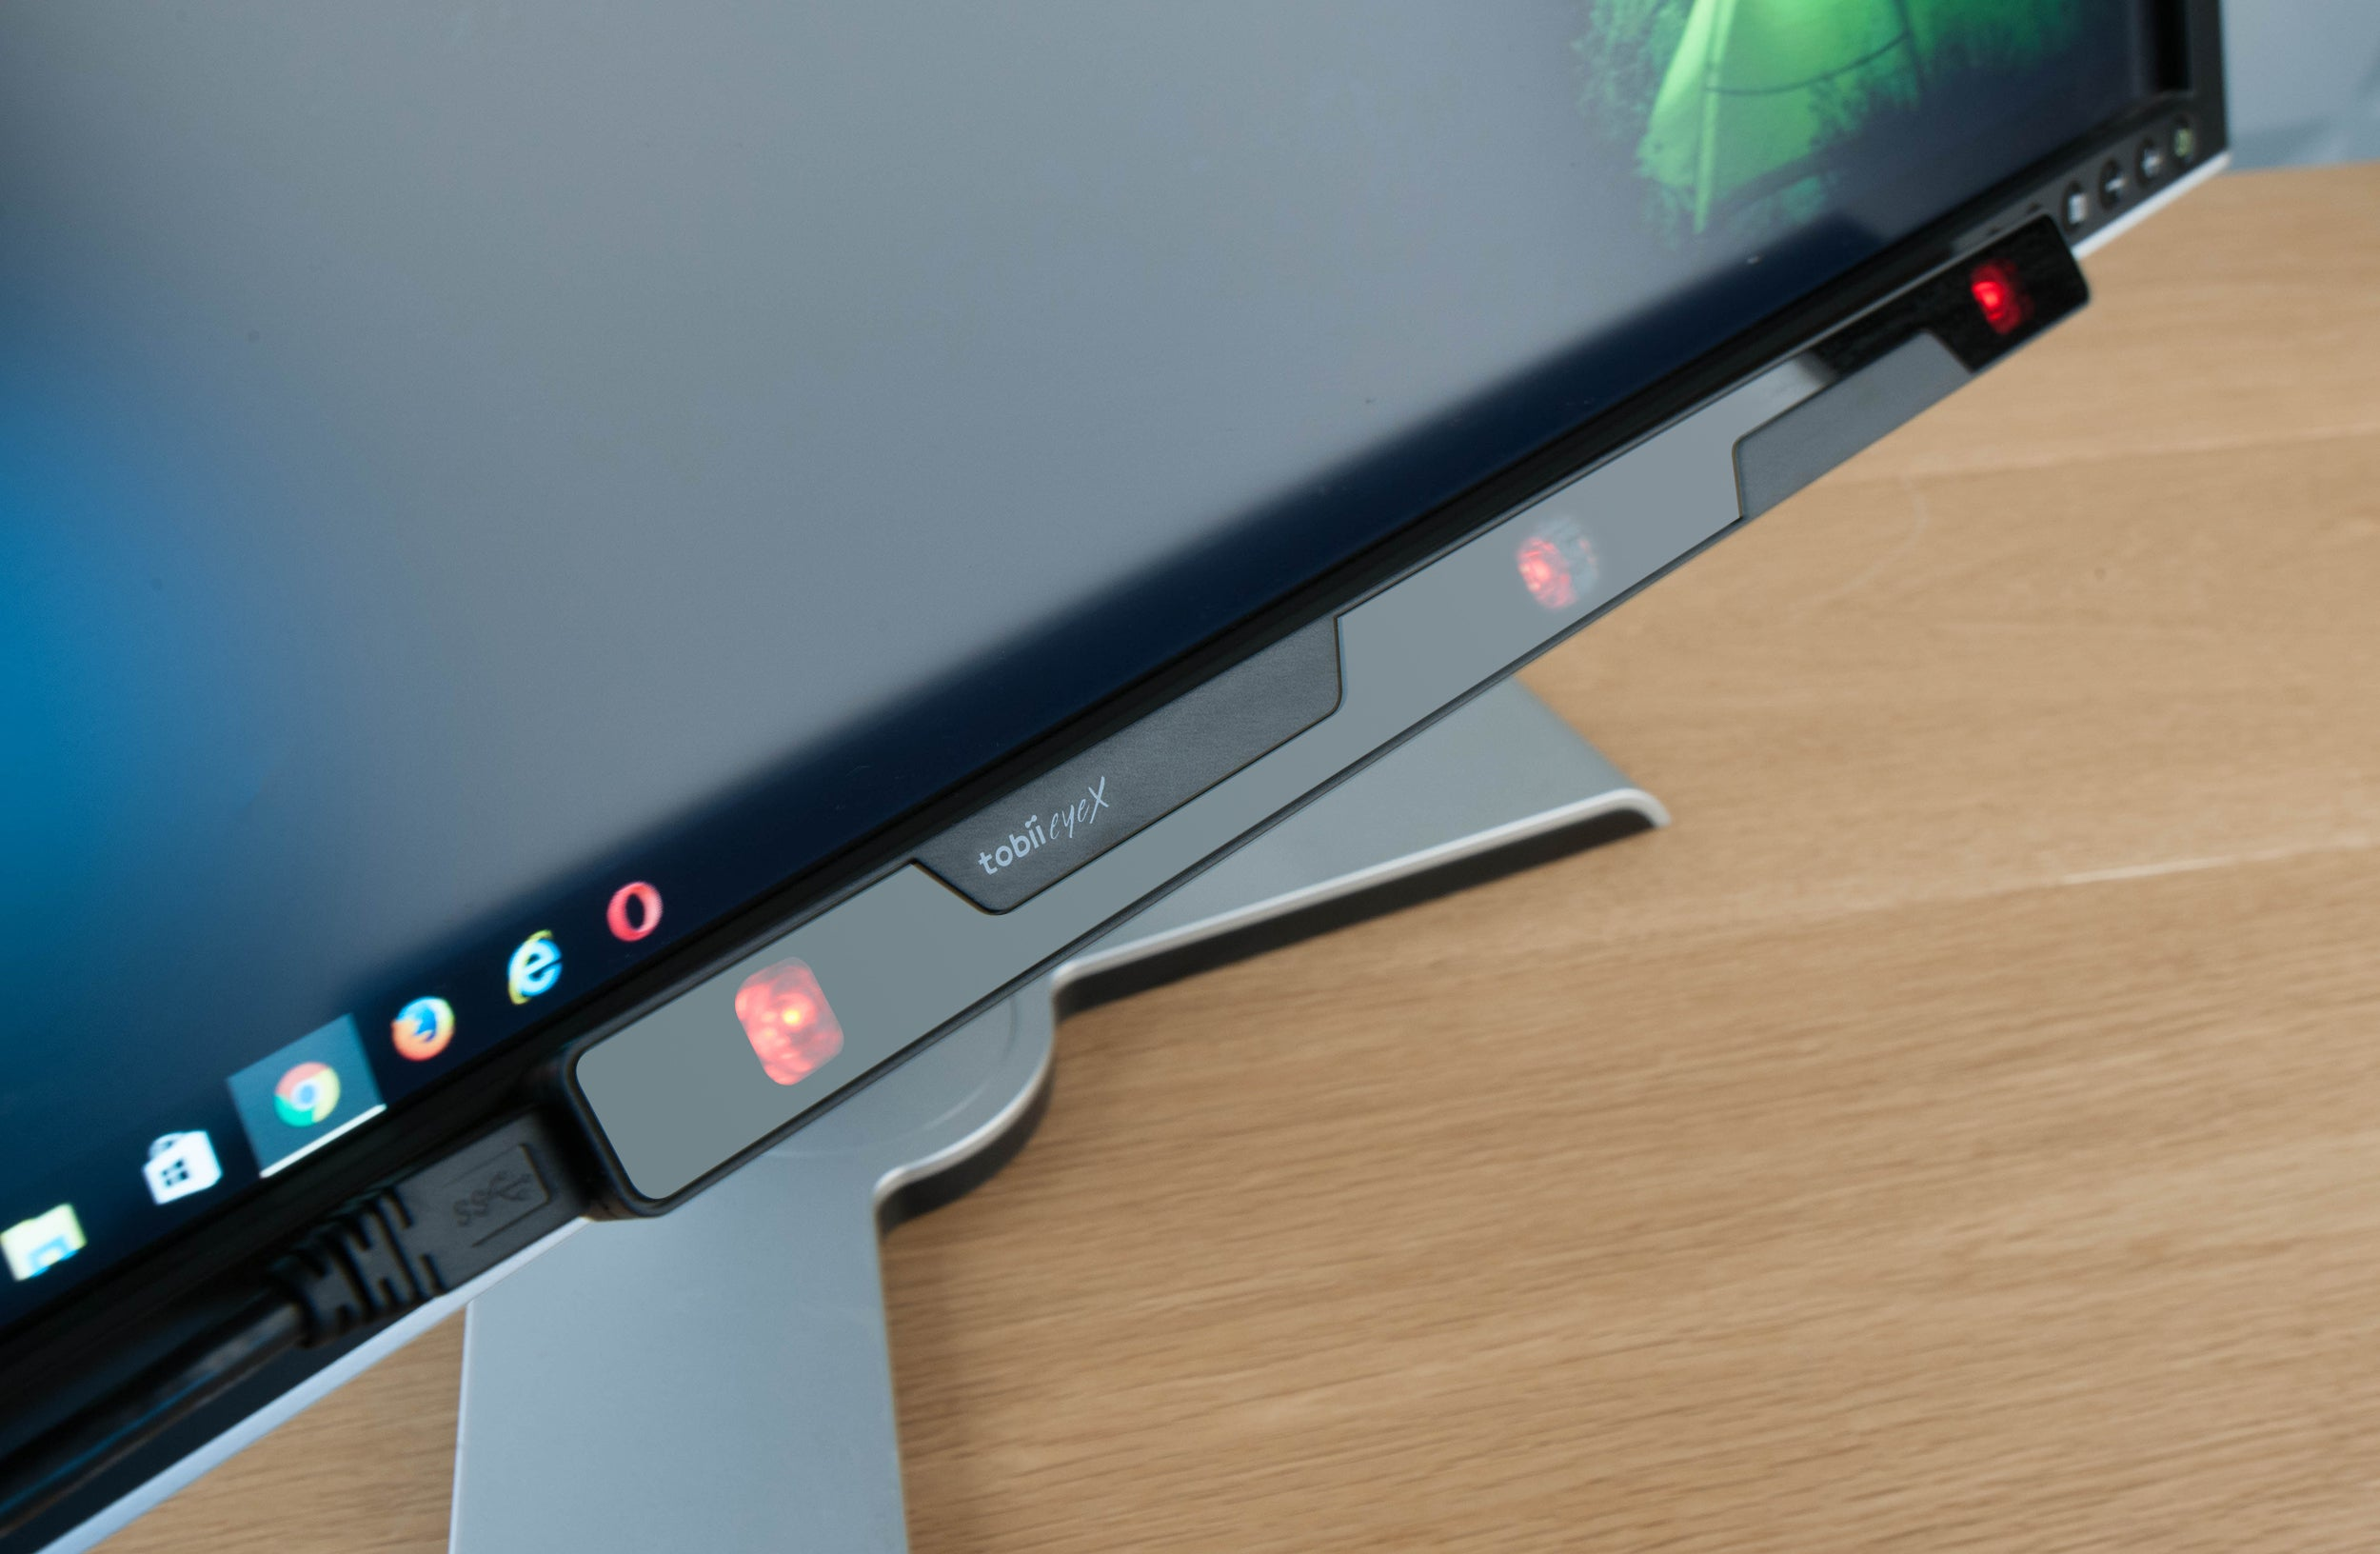 Tobii Eyex Review The Eye Mouse Is Magical But Just Not For Everyone Pcworld